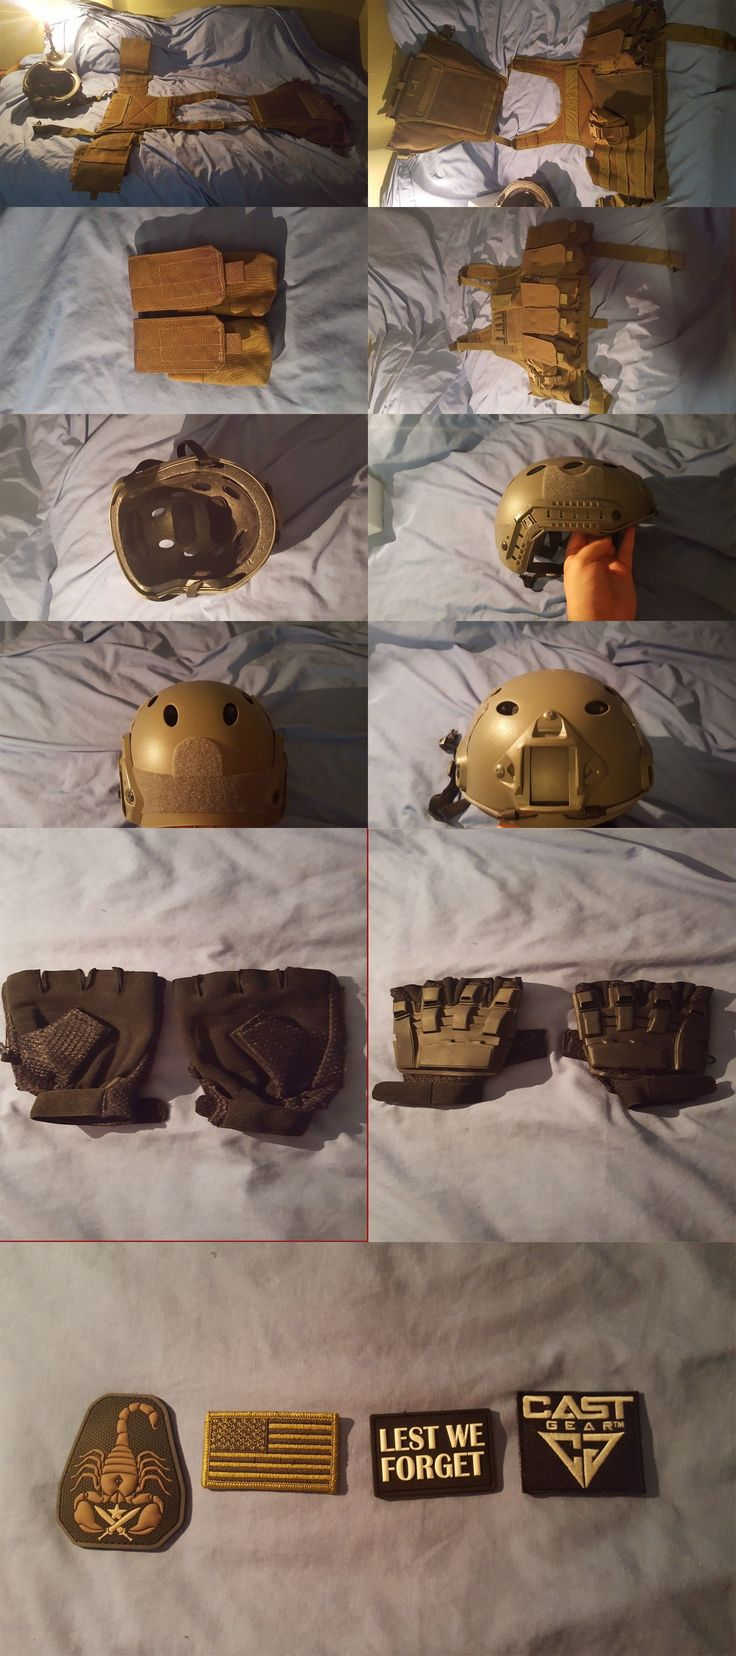 Clothing and Protective Gear 159044: Airsoft Vest And Helmet, Pouches, Patches, And Gloves -> BUY IT NOW ONLY: $75 on eBay!